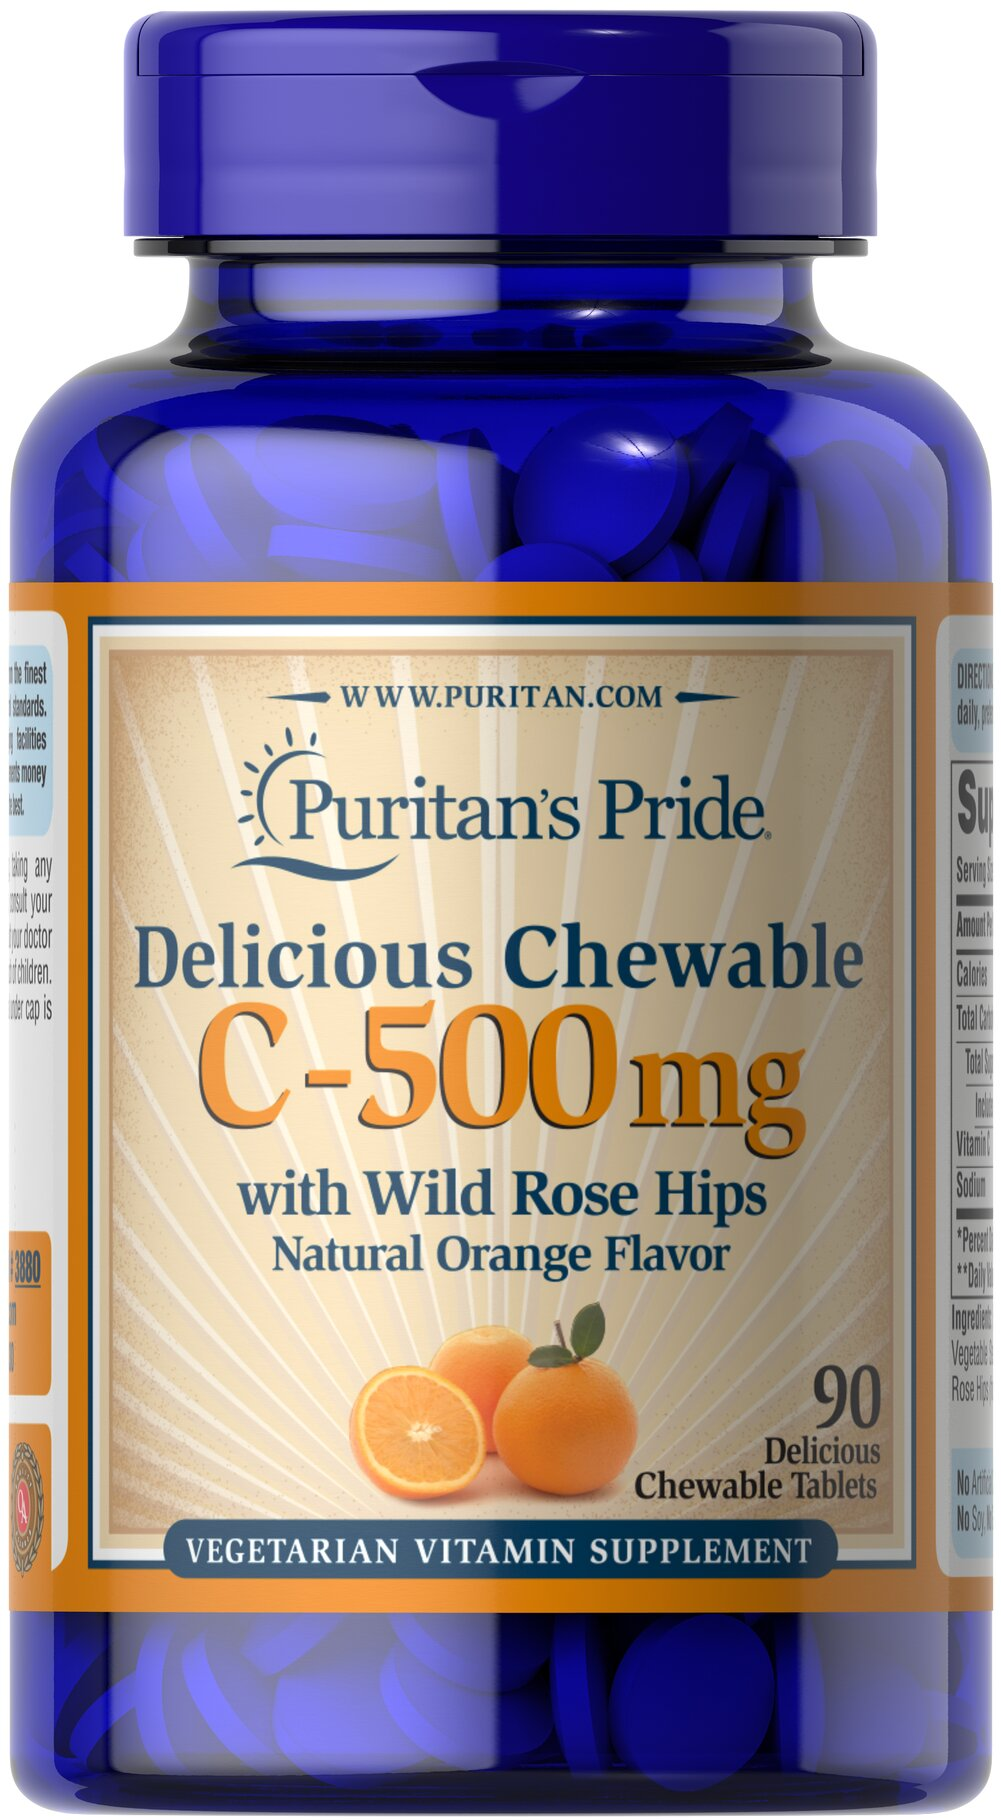 Chewable Vitamin C-500 mg with Rose Hips <p><strong>Chewable Orange Flavored Tablets</strong></p><p>Vitamin C is essential to many functions in the body and is one of the leading vitamins for immune support and helps fight the cell-damaging free radicals that can lead to oxidative stress and premature aging of cells.**</p><p>Offers superior antioxidant support.**</p><p>Supports healthy immune function and promotes well-being.**</p> 90 C